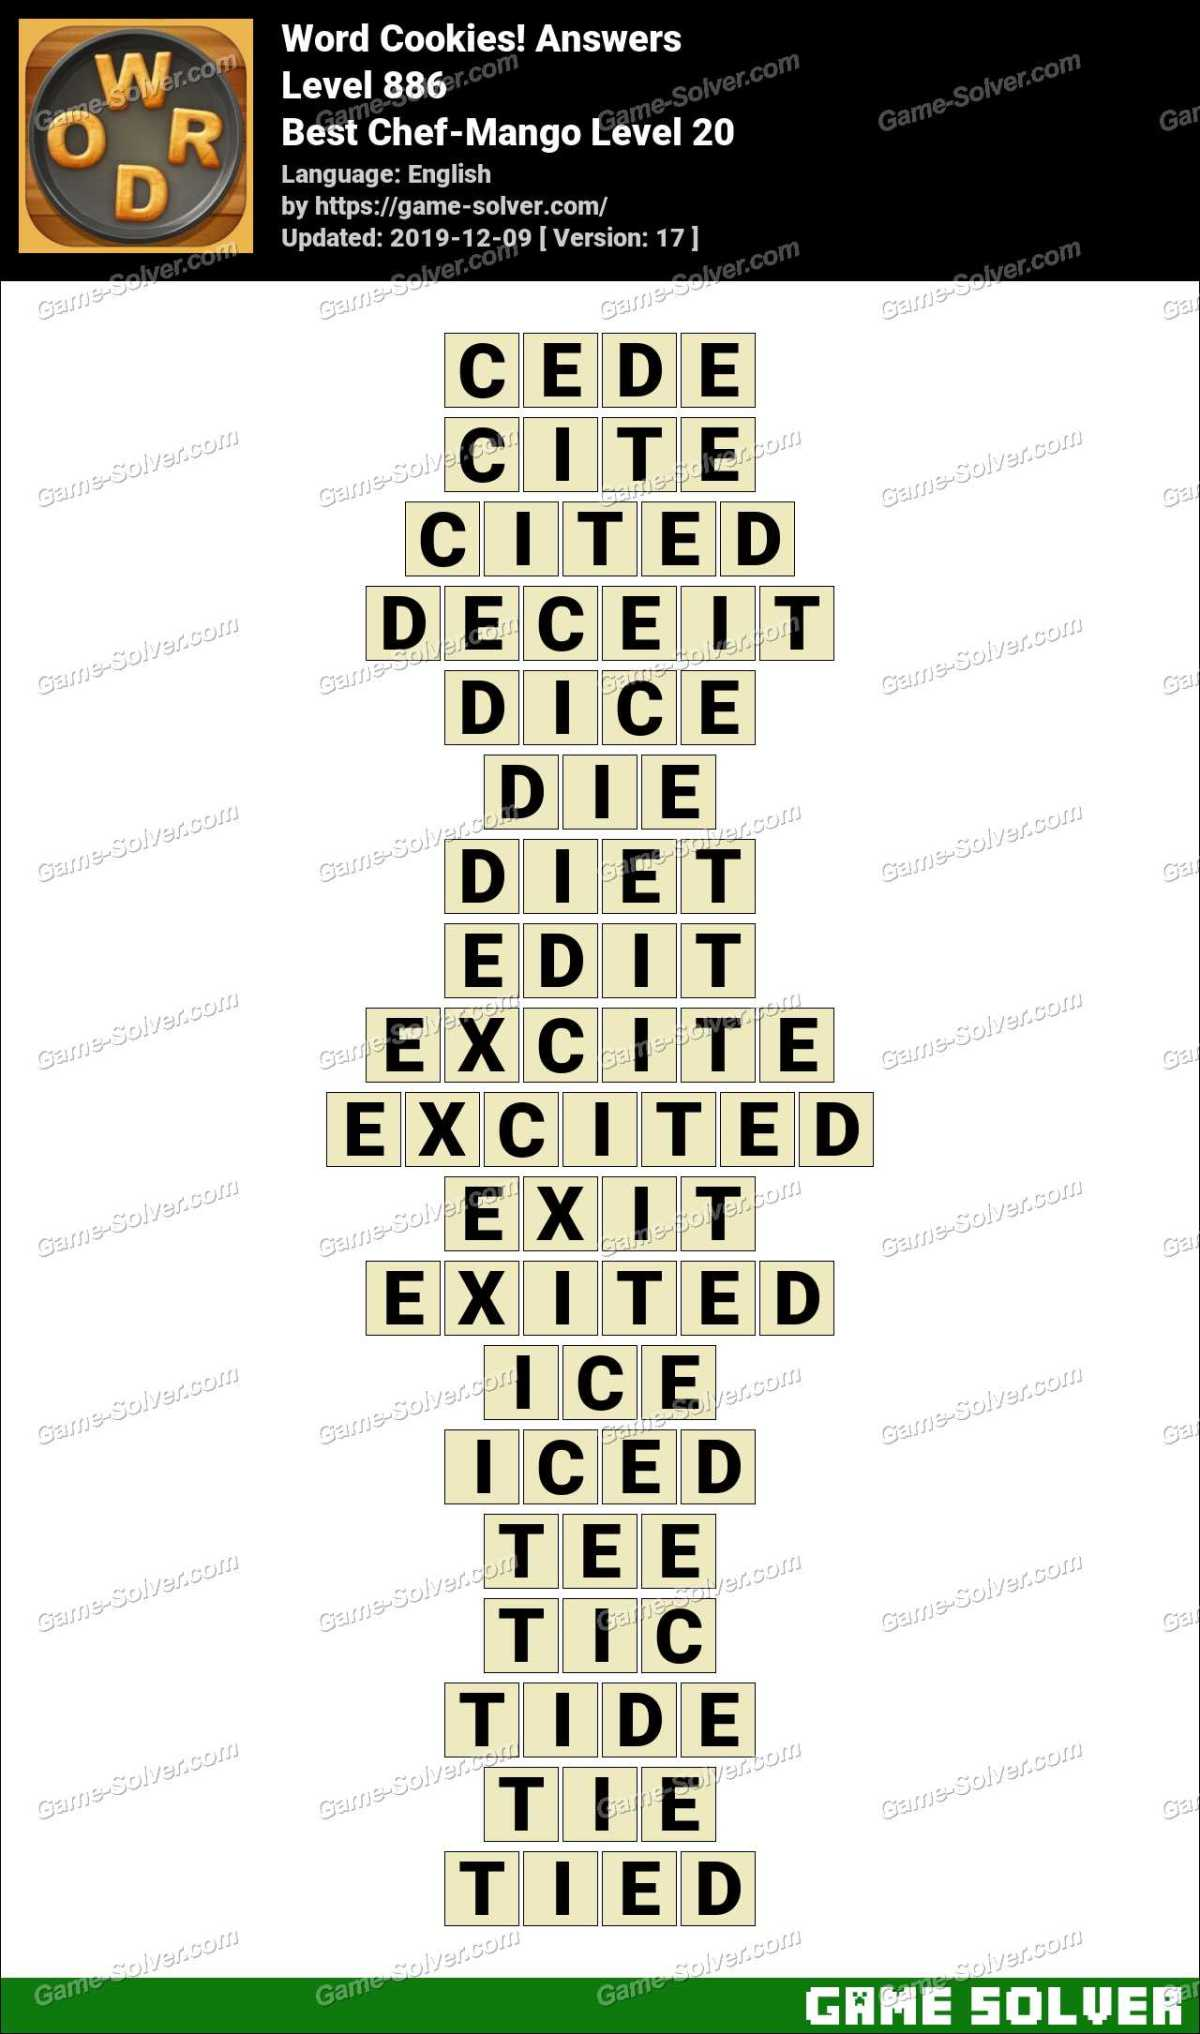 Word Cookies Best Chef-Mango Level 20 Answers